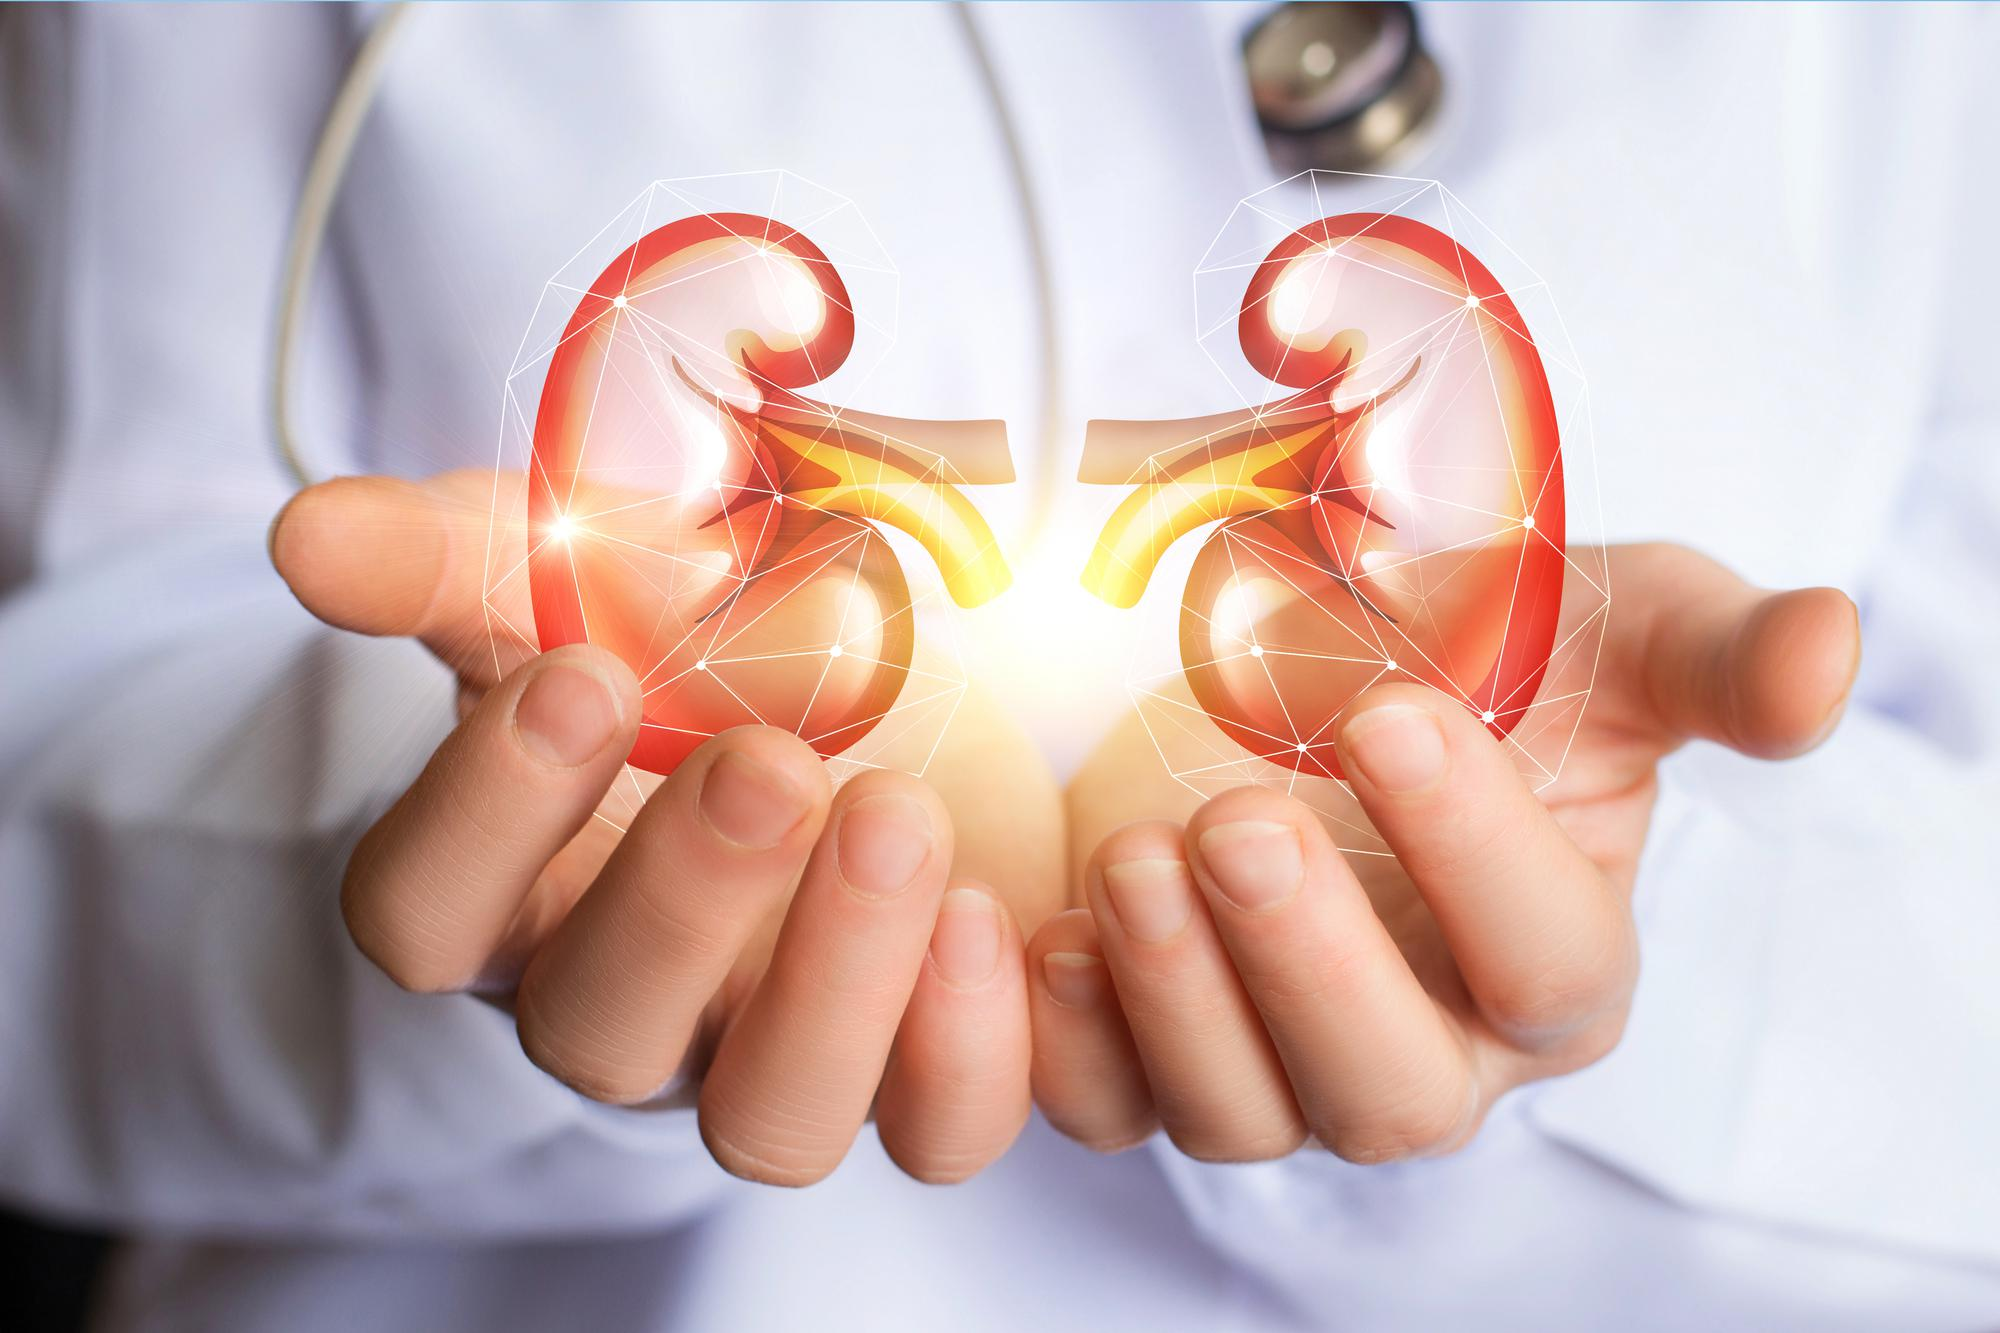 Proven Tips to Keep Your Kidneys Healthy and Strong